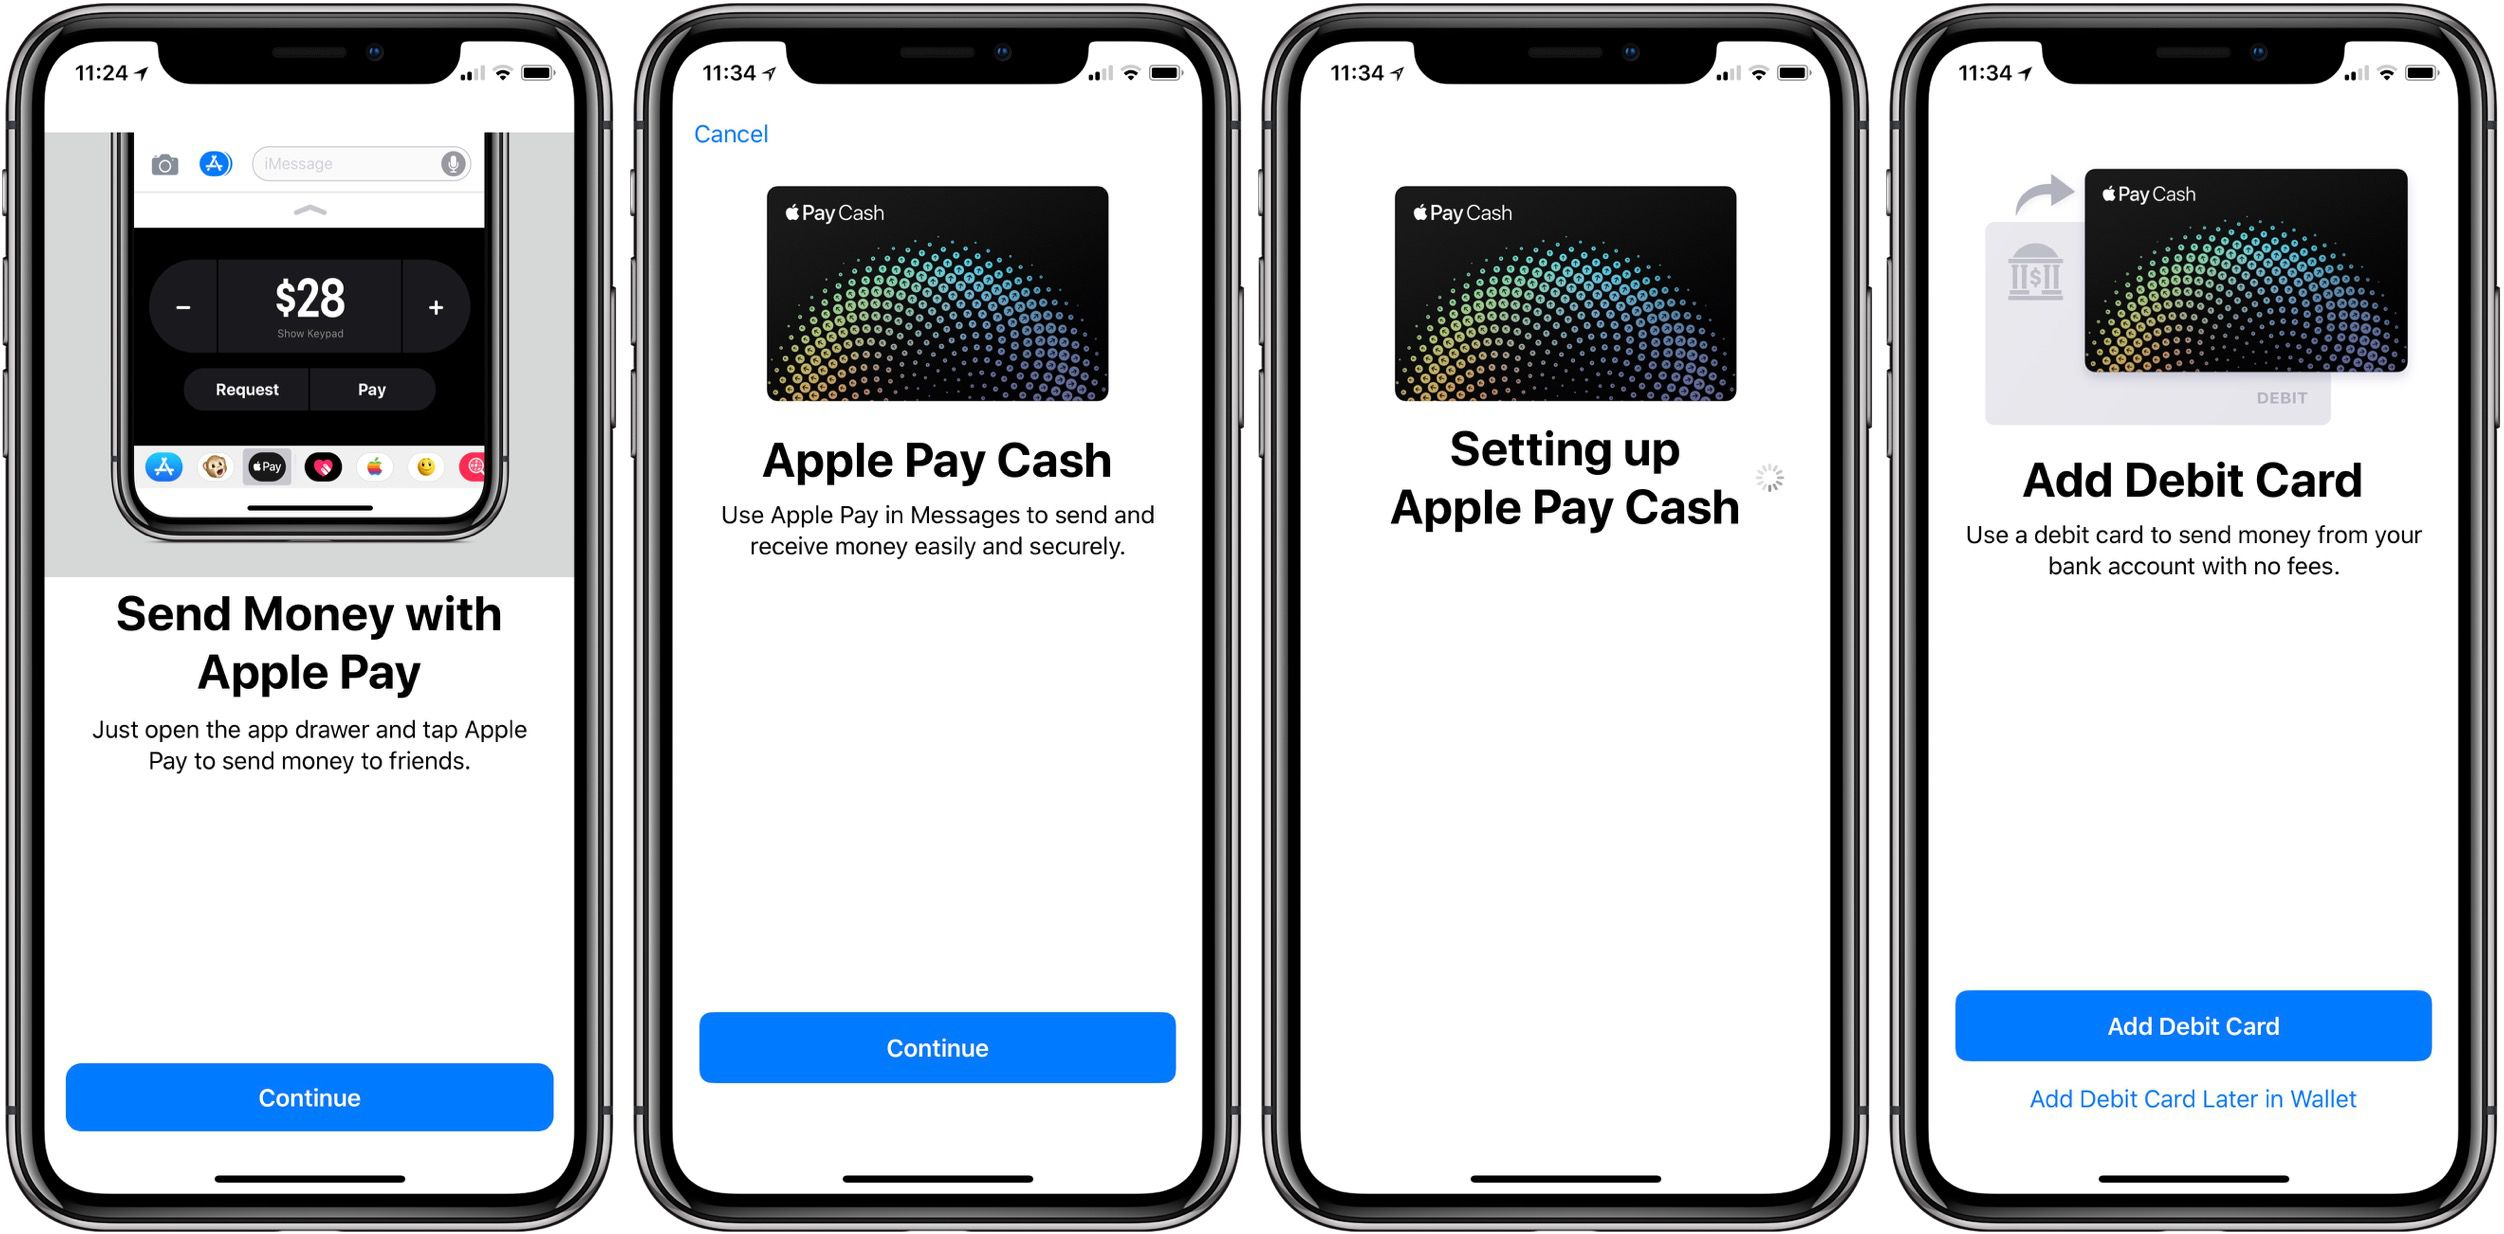 Apple Pay cash walkthrough 1